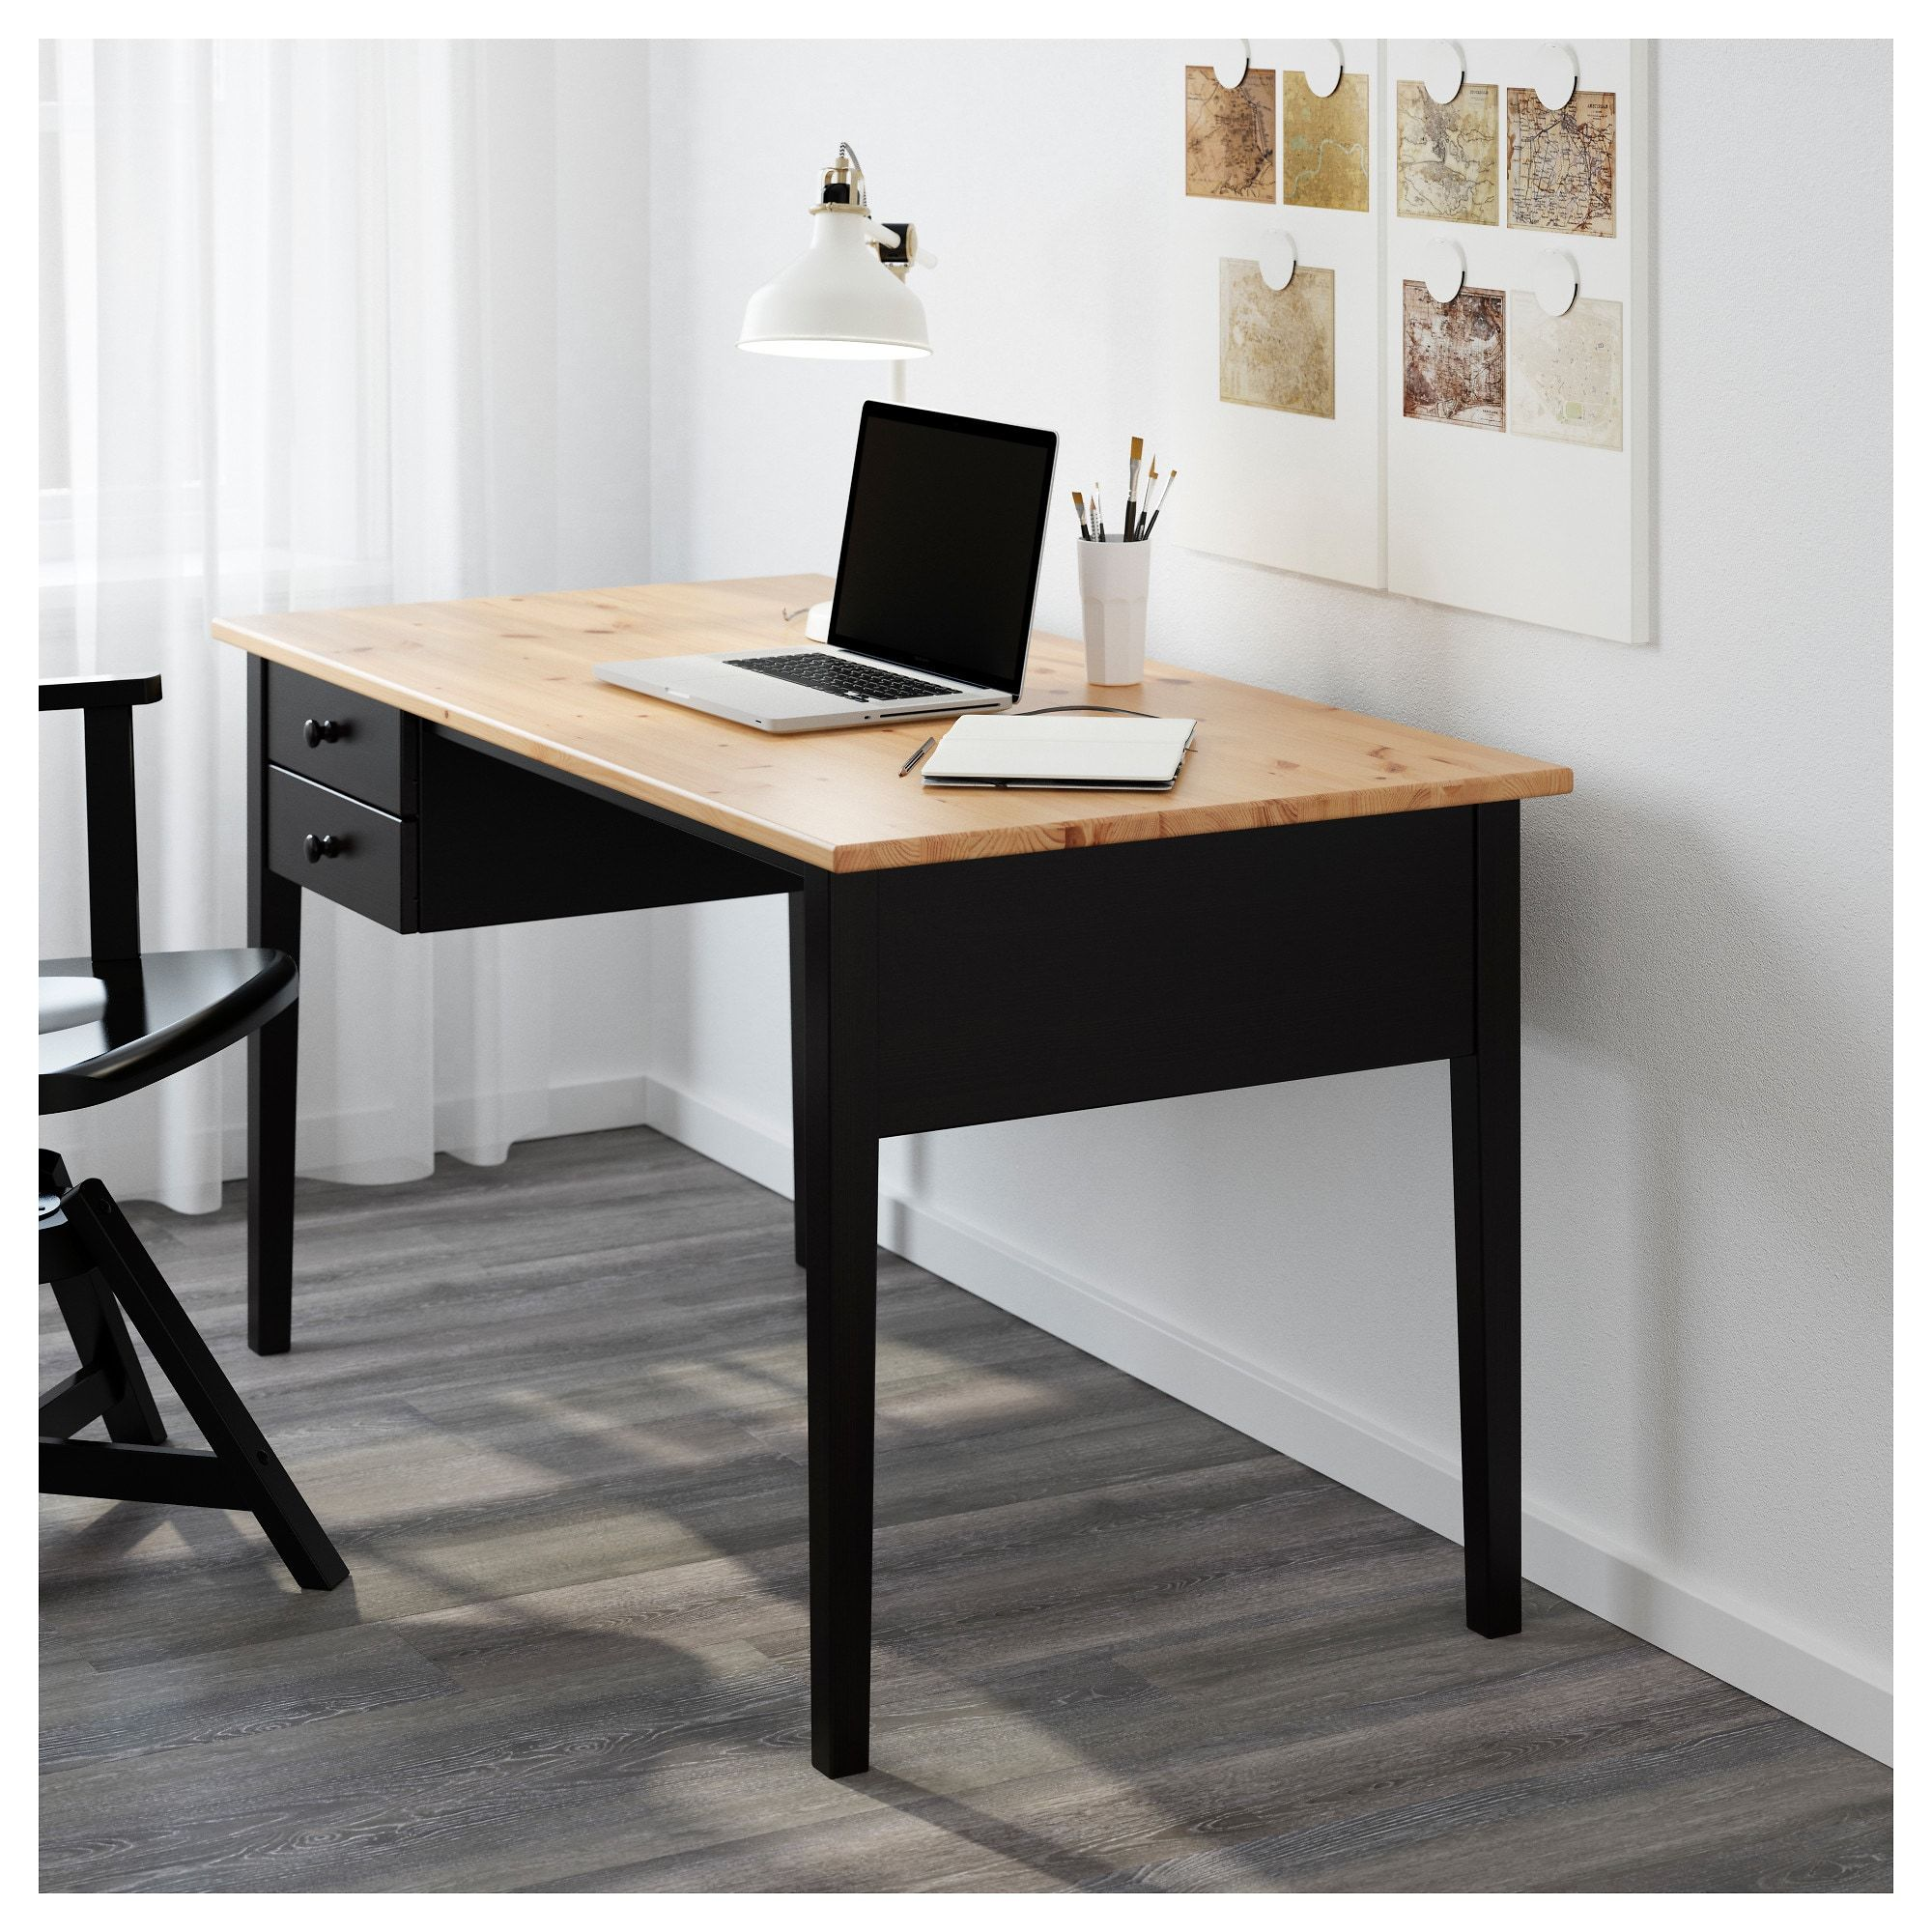 Arkelstorp Bureau Zwart 140x70 Cm Ikea Black Desk Home Office Design Ikea Desk